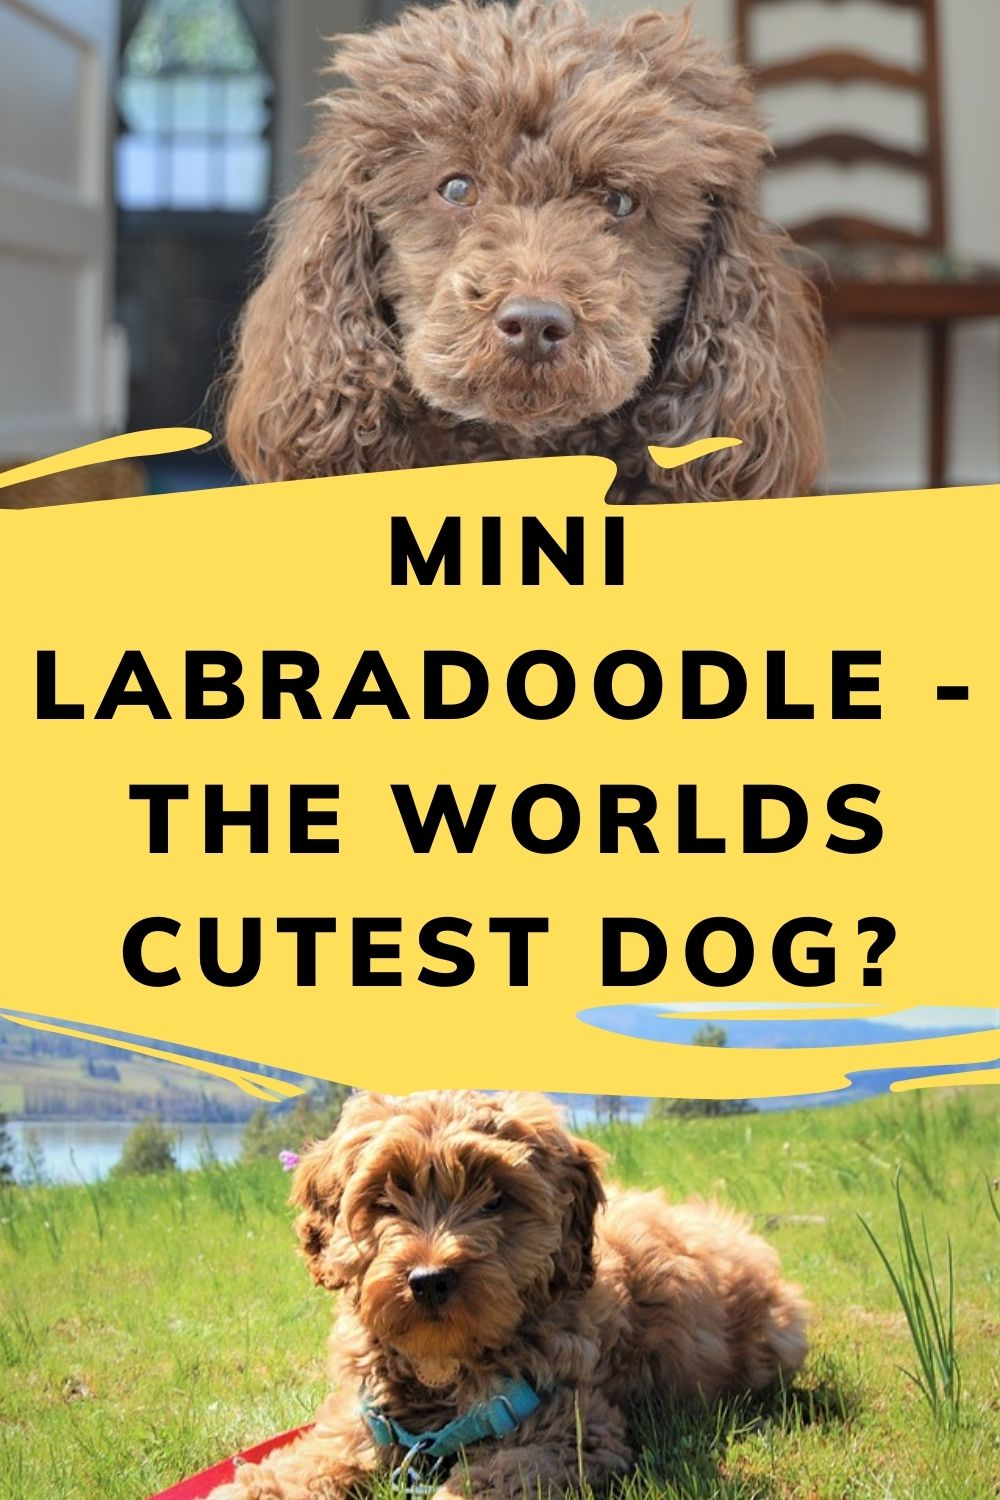 Mini Labradoodle Complete Guide To The Cutest Dog